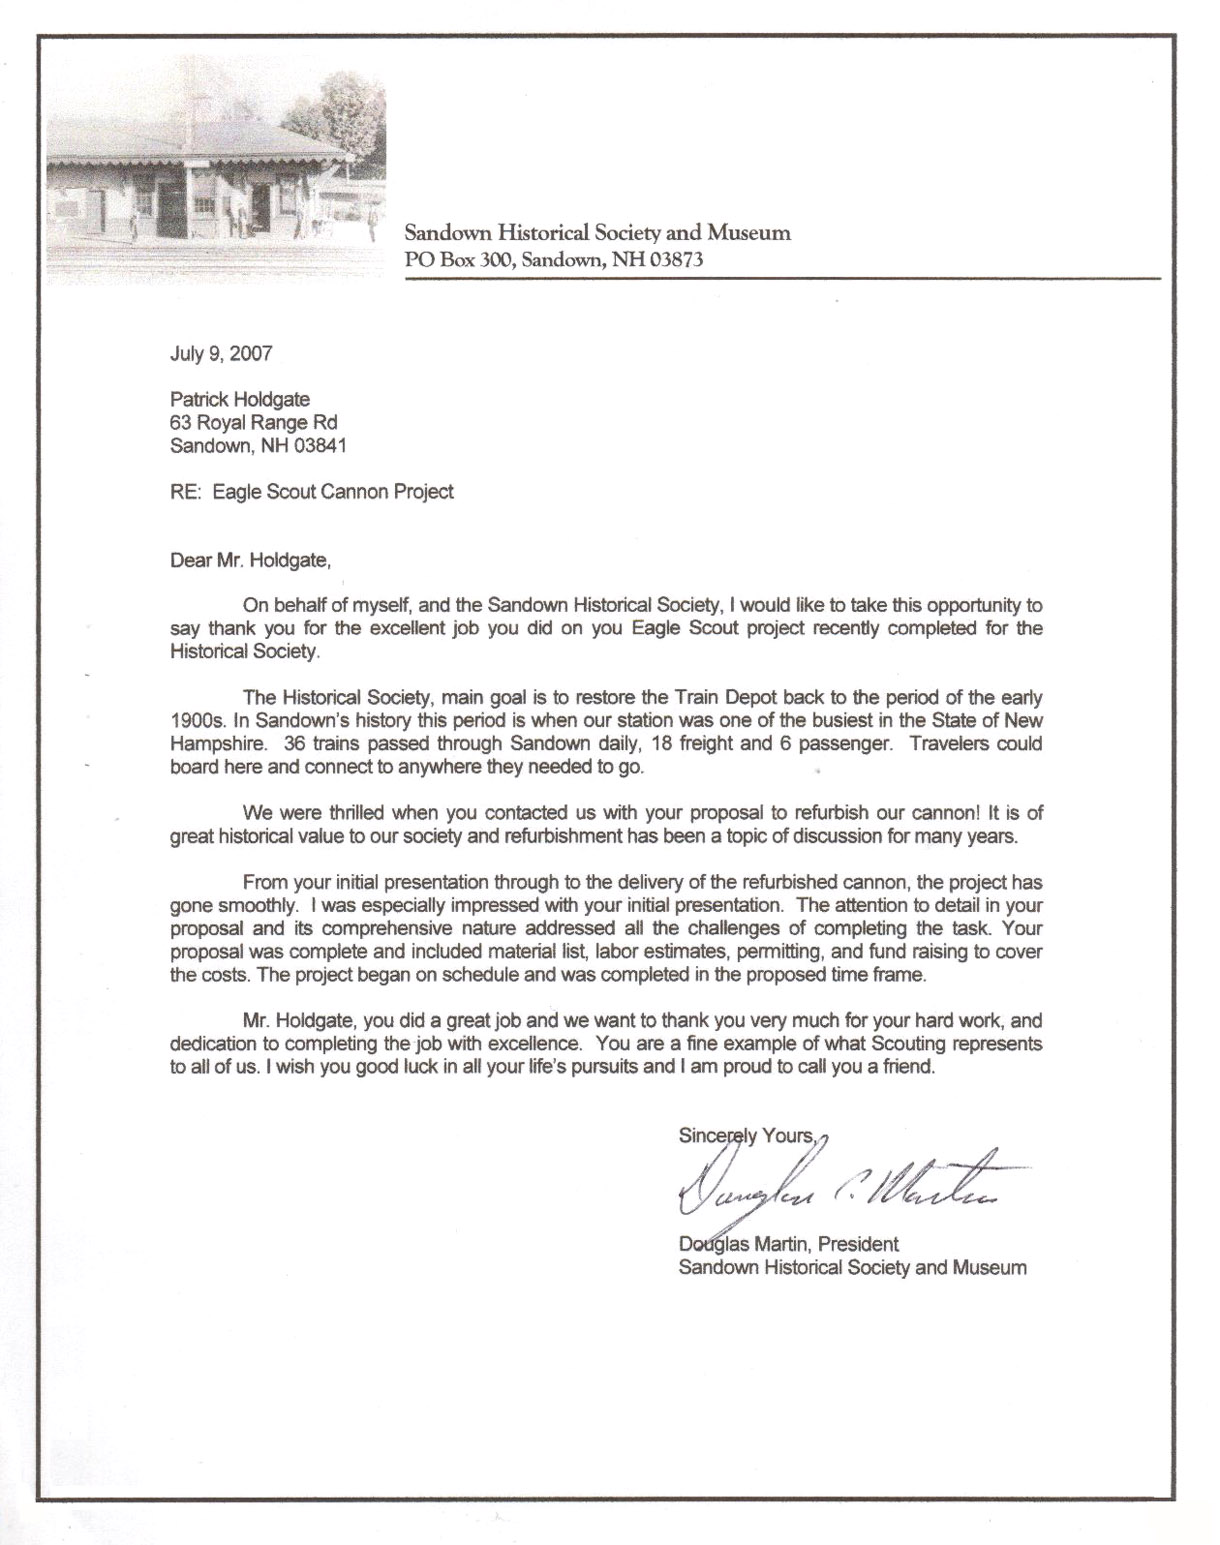 format of contract acceptance letter construction contract forms format of contract acceptance letter